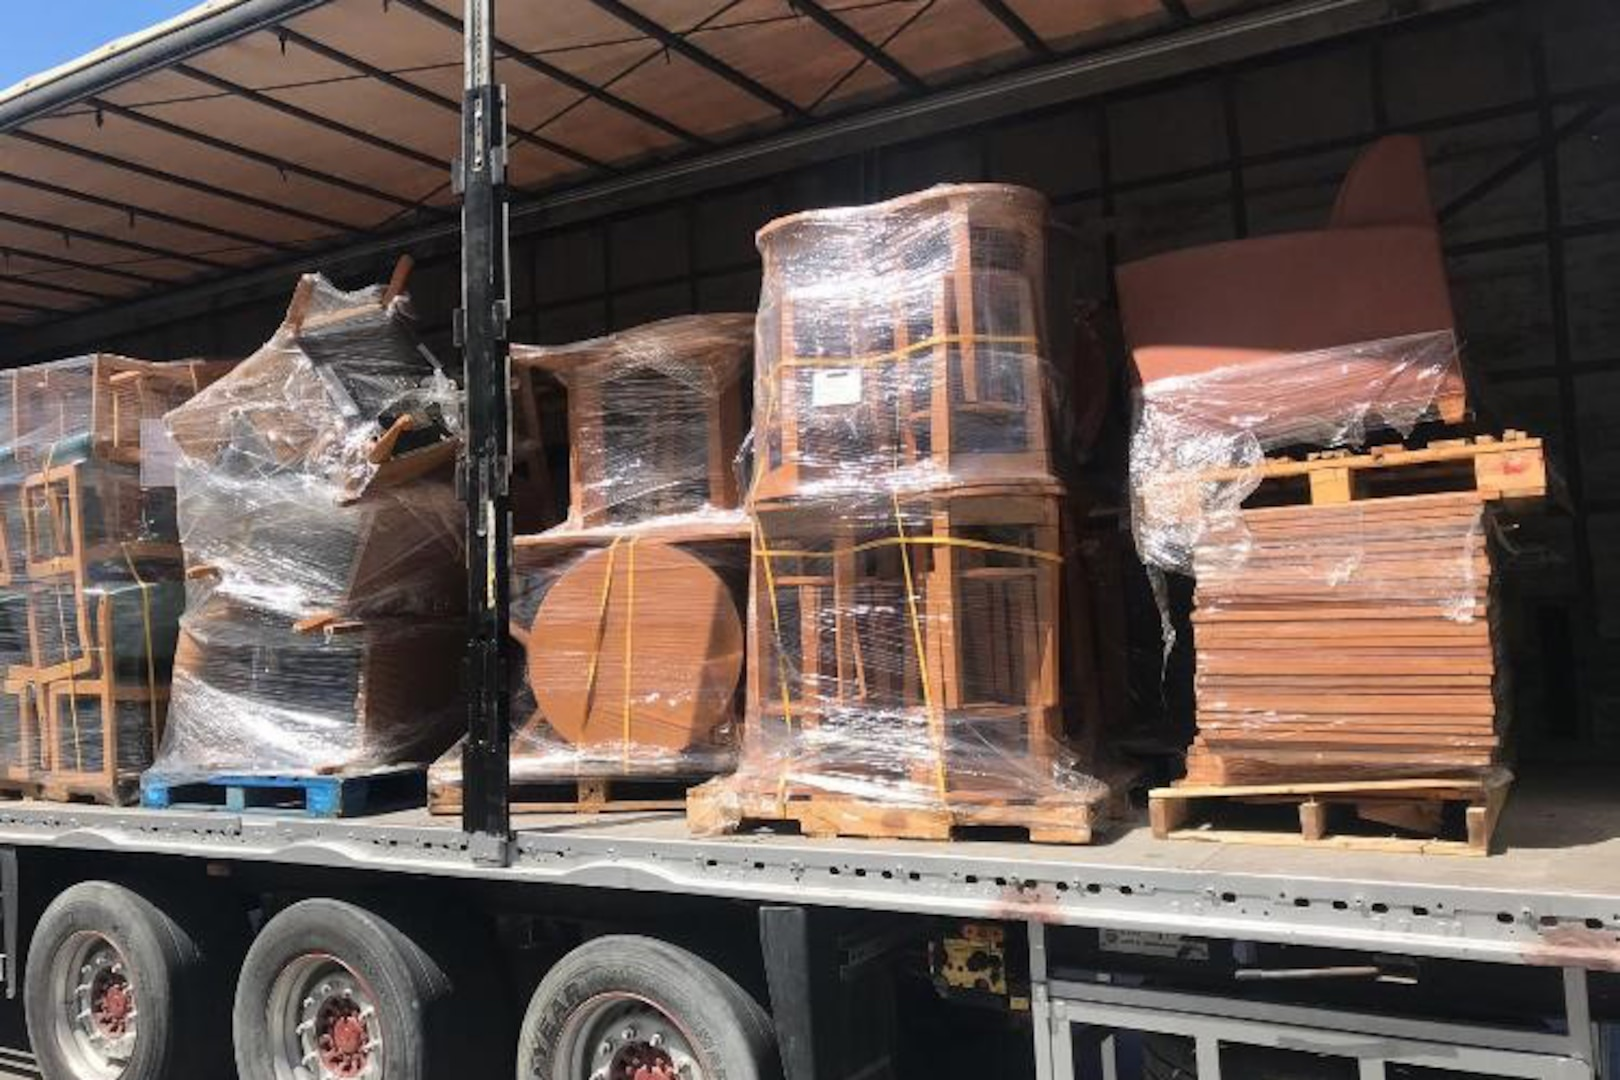 More chairs and some tables await transport from the DLA Disposition Services site in Bahrain to the local Red Crescent Society where they will help those in need.